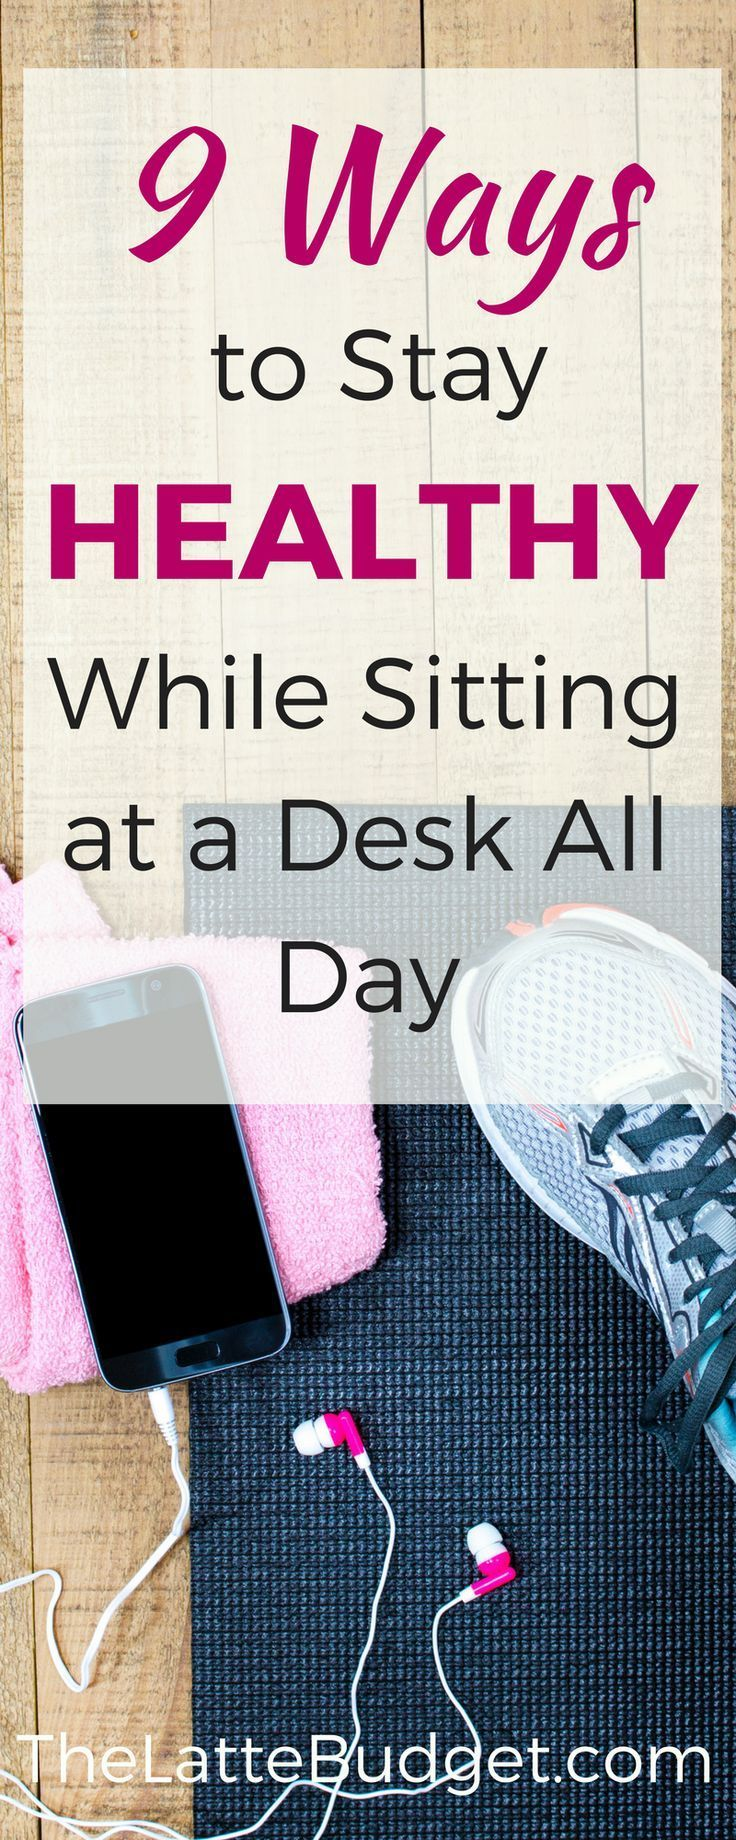 Fitness, healthy, wellness, lose weight, office job, corporate, personal finance, money, workout